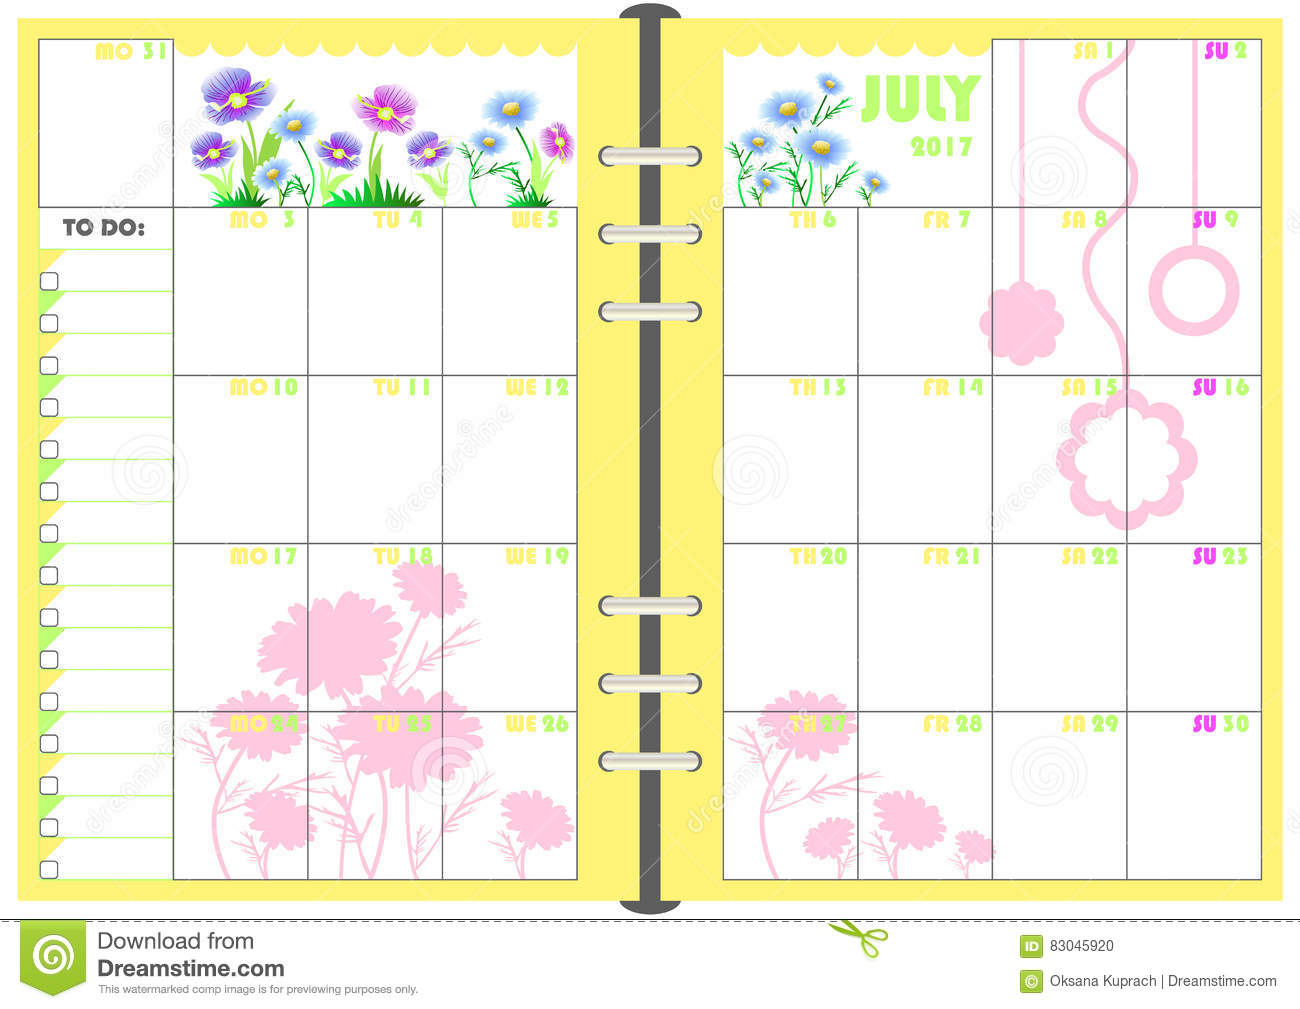 Calendar Planner Vector Free : Daily planner july stock illustration